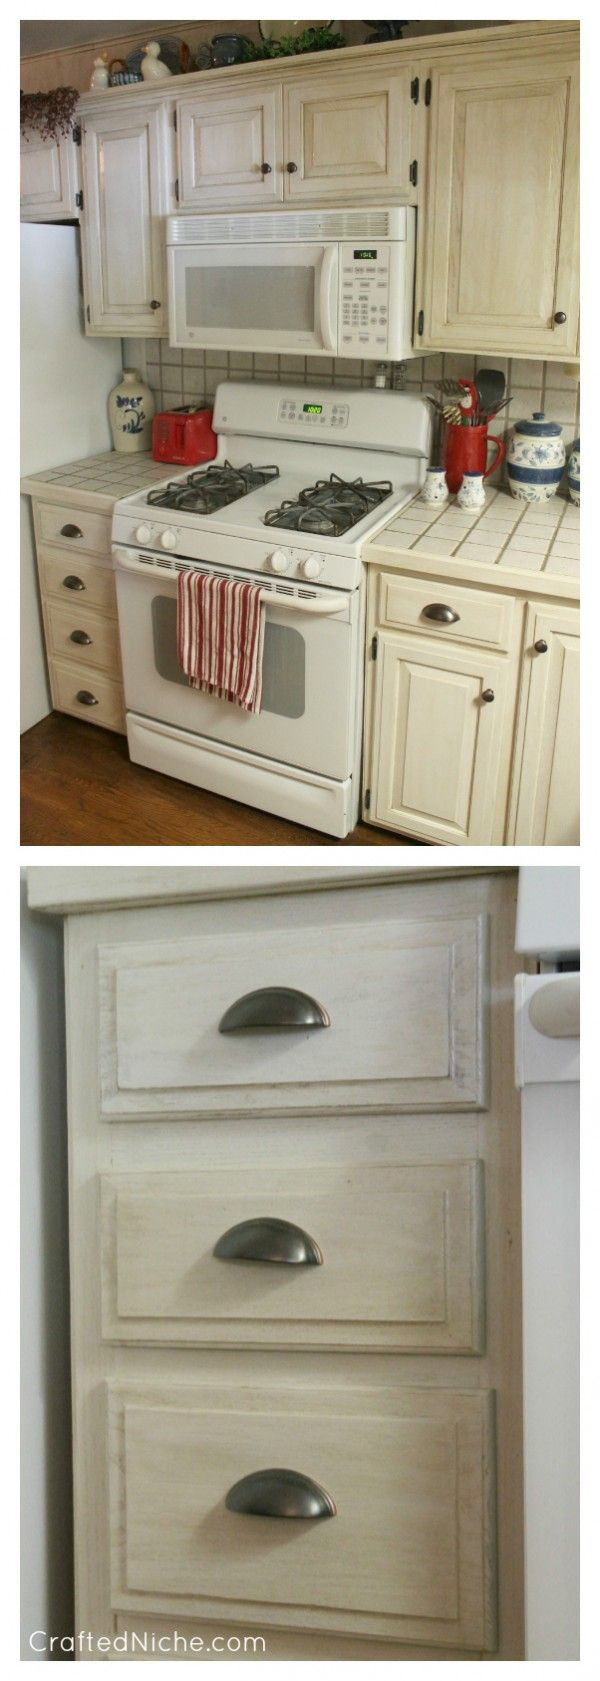 38 best kitchen images on pinterest cabinet transformations rustoleum transformations linen 3